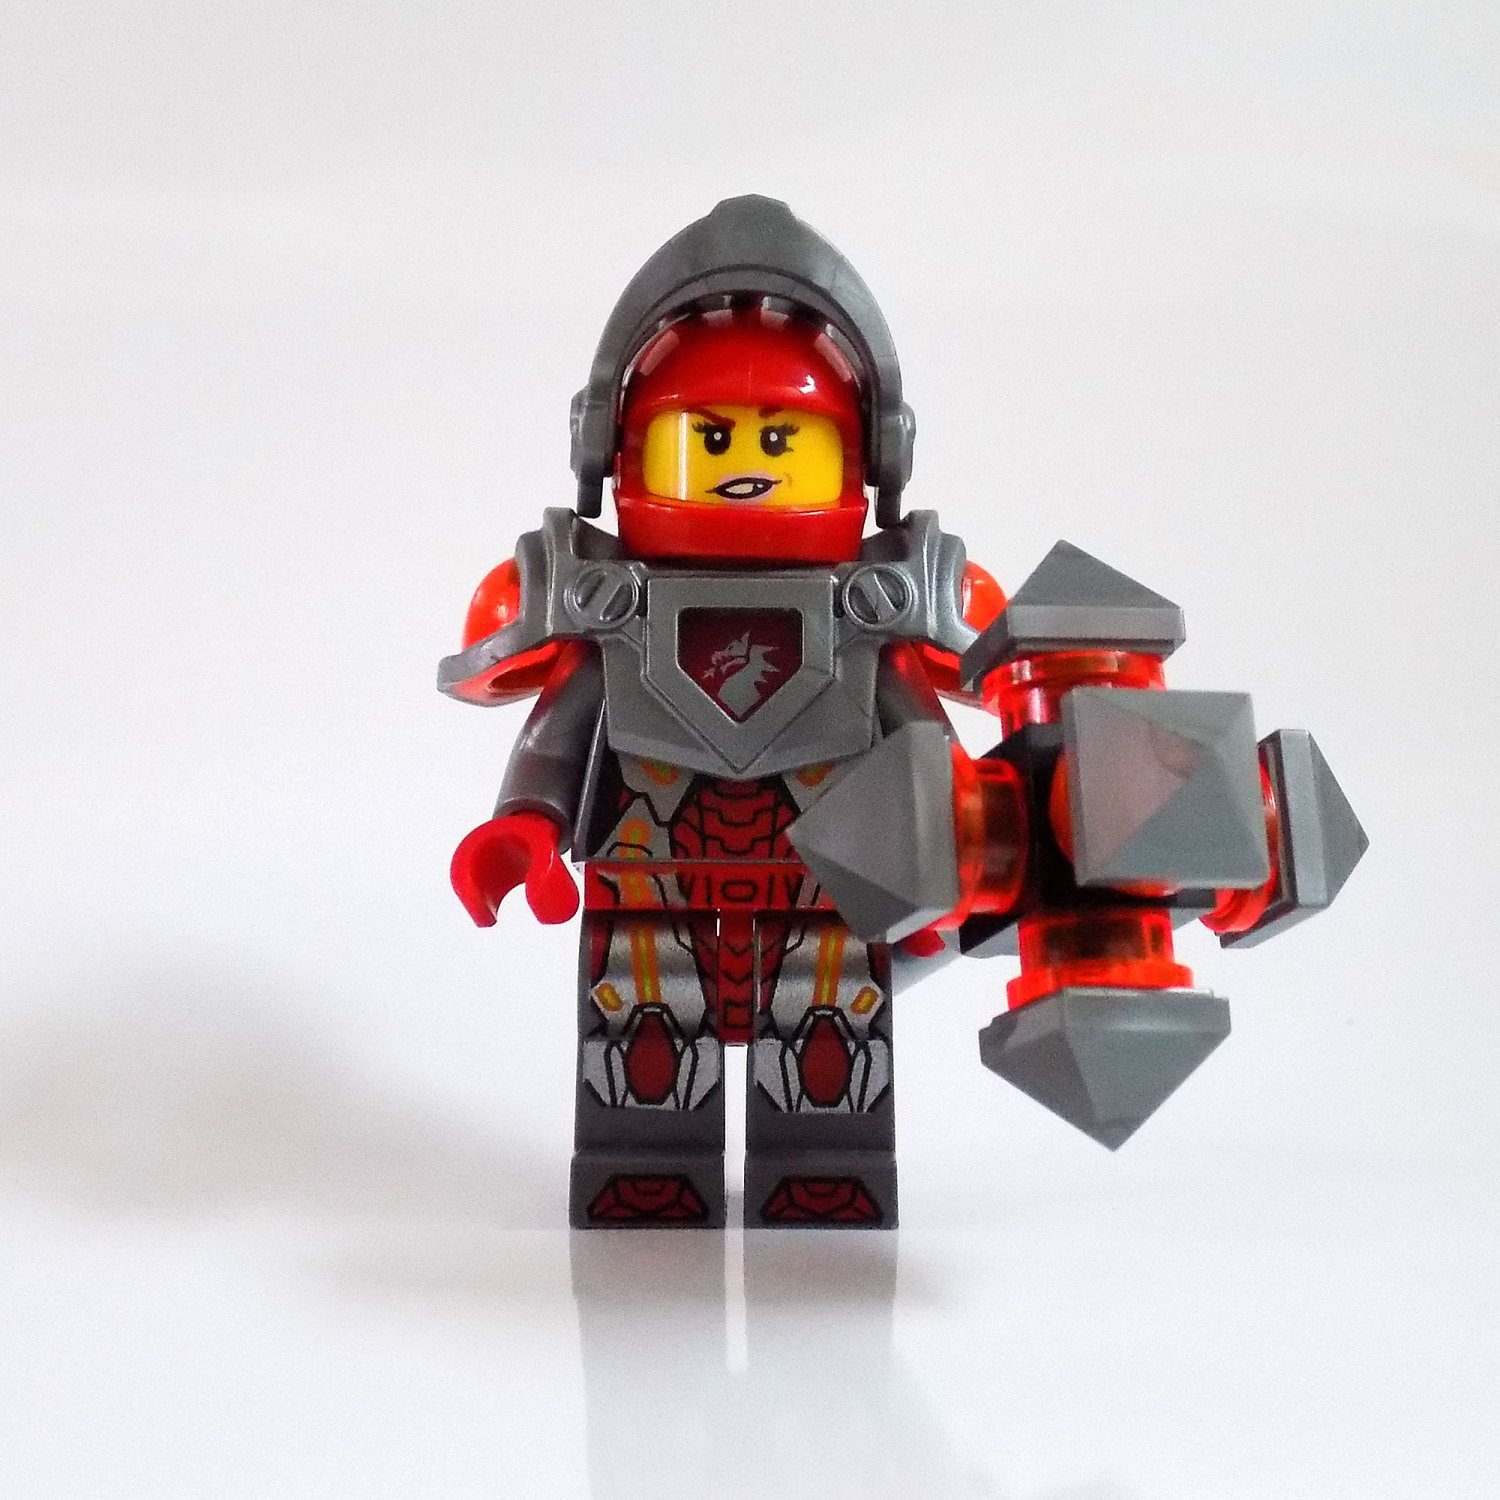 Lego Knight Macy Minifigure from Nexo Knights